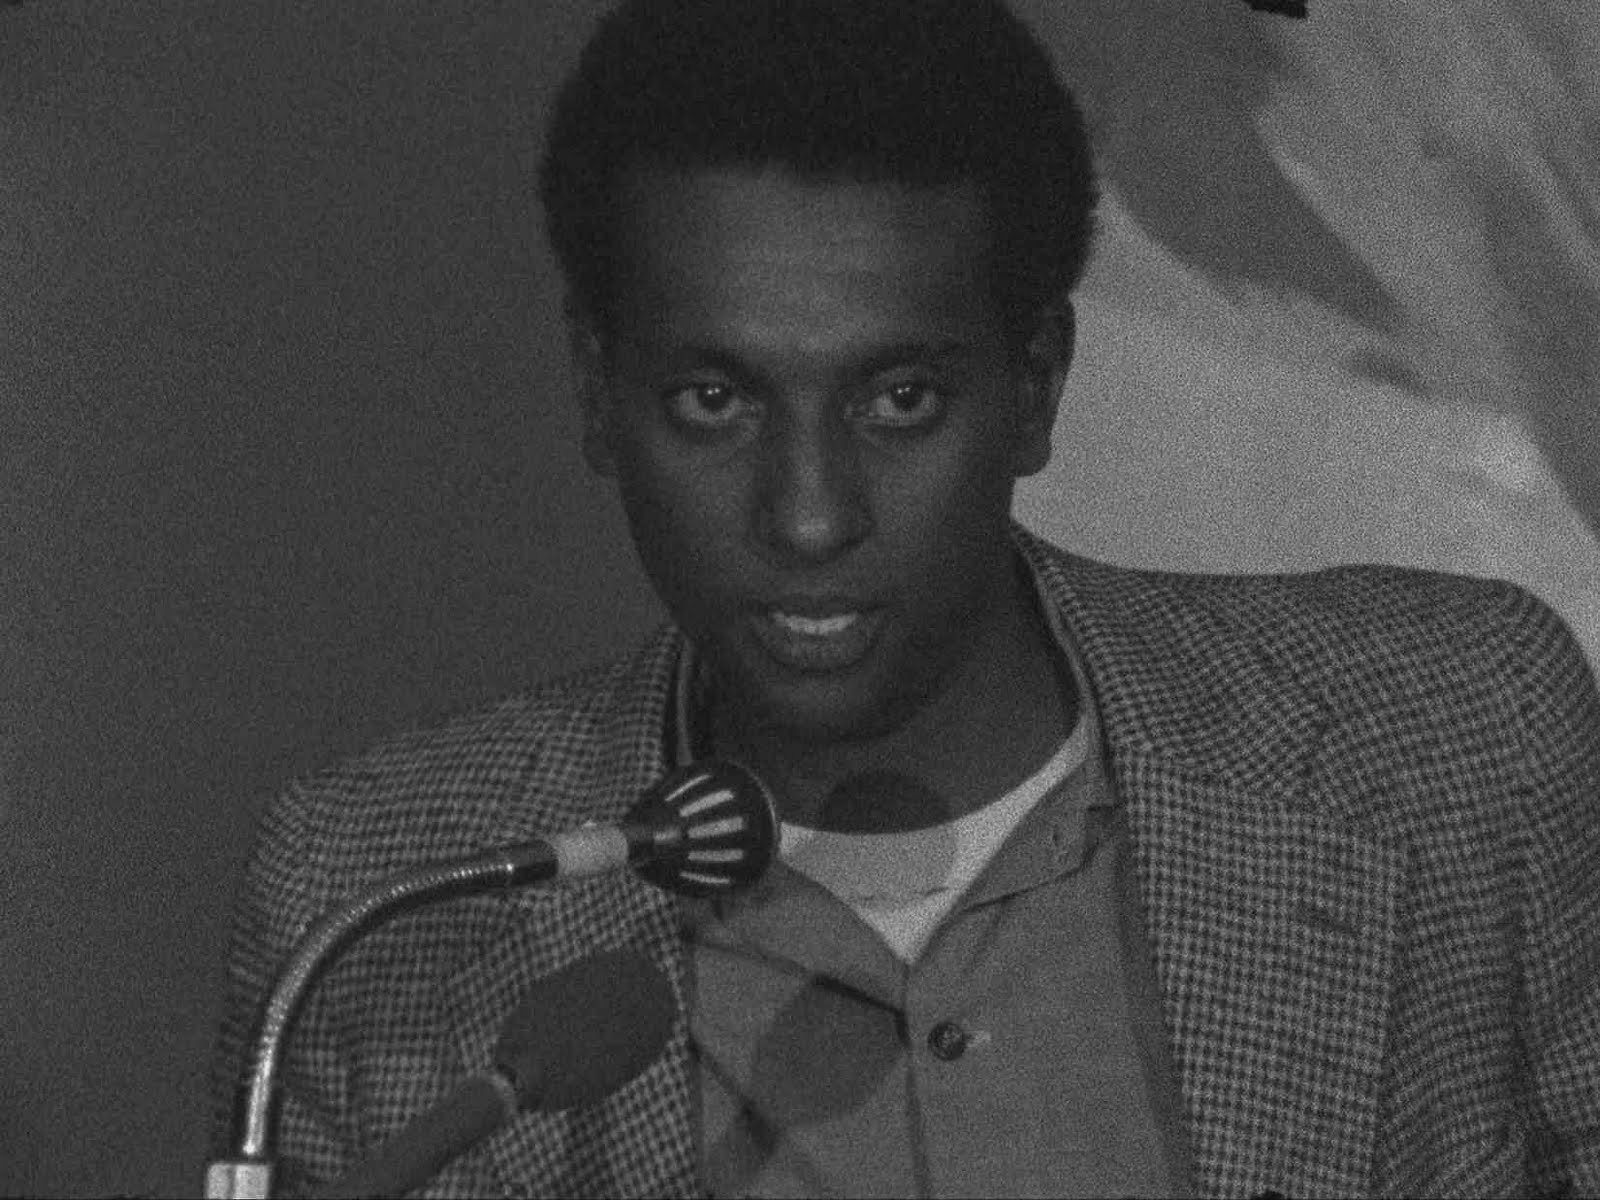 an analysis of stokely carmichael a view point Study guide and teaching aid for stokely carmichael: black power featuring document text, summary, and expert commentary.